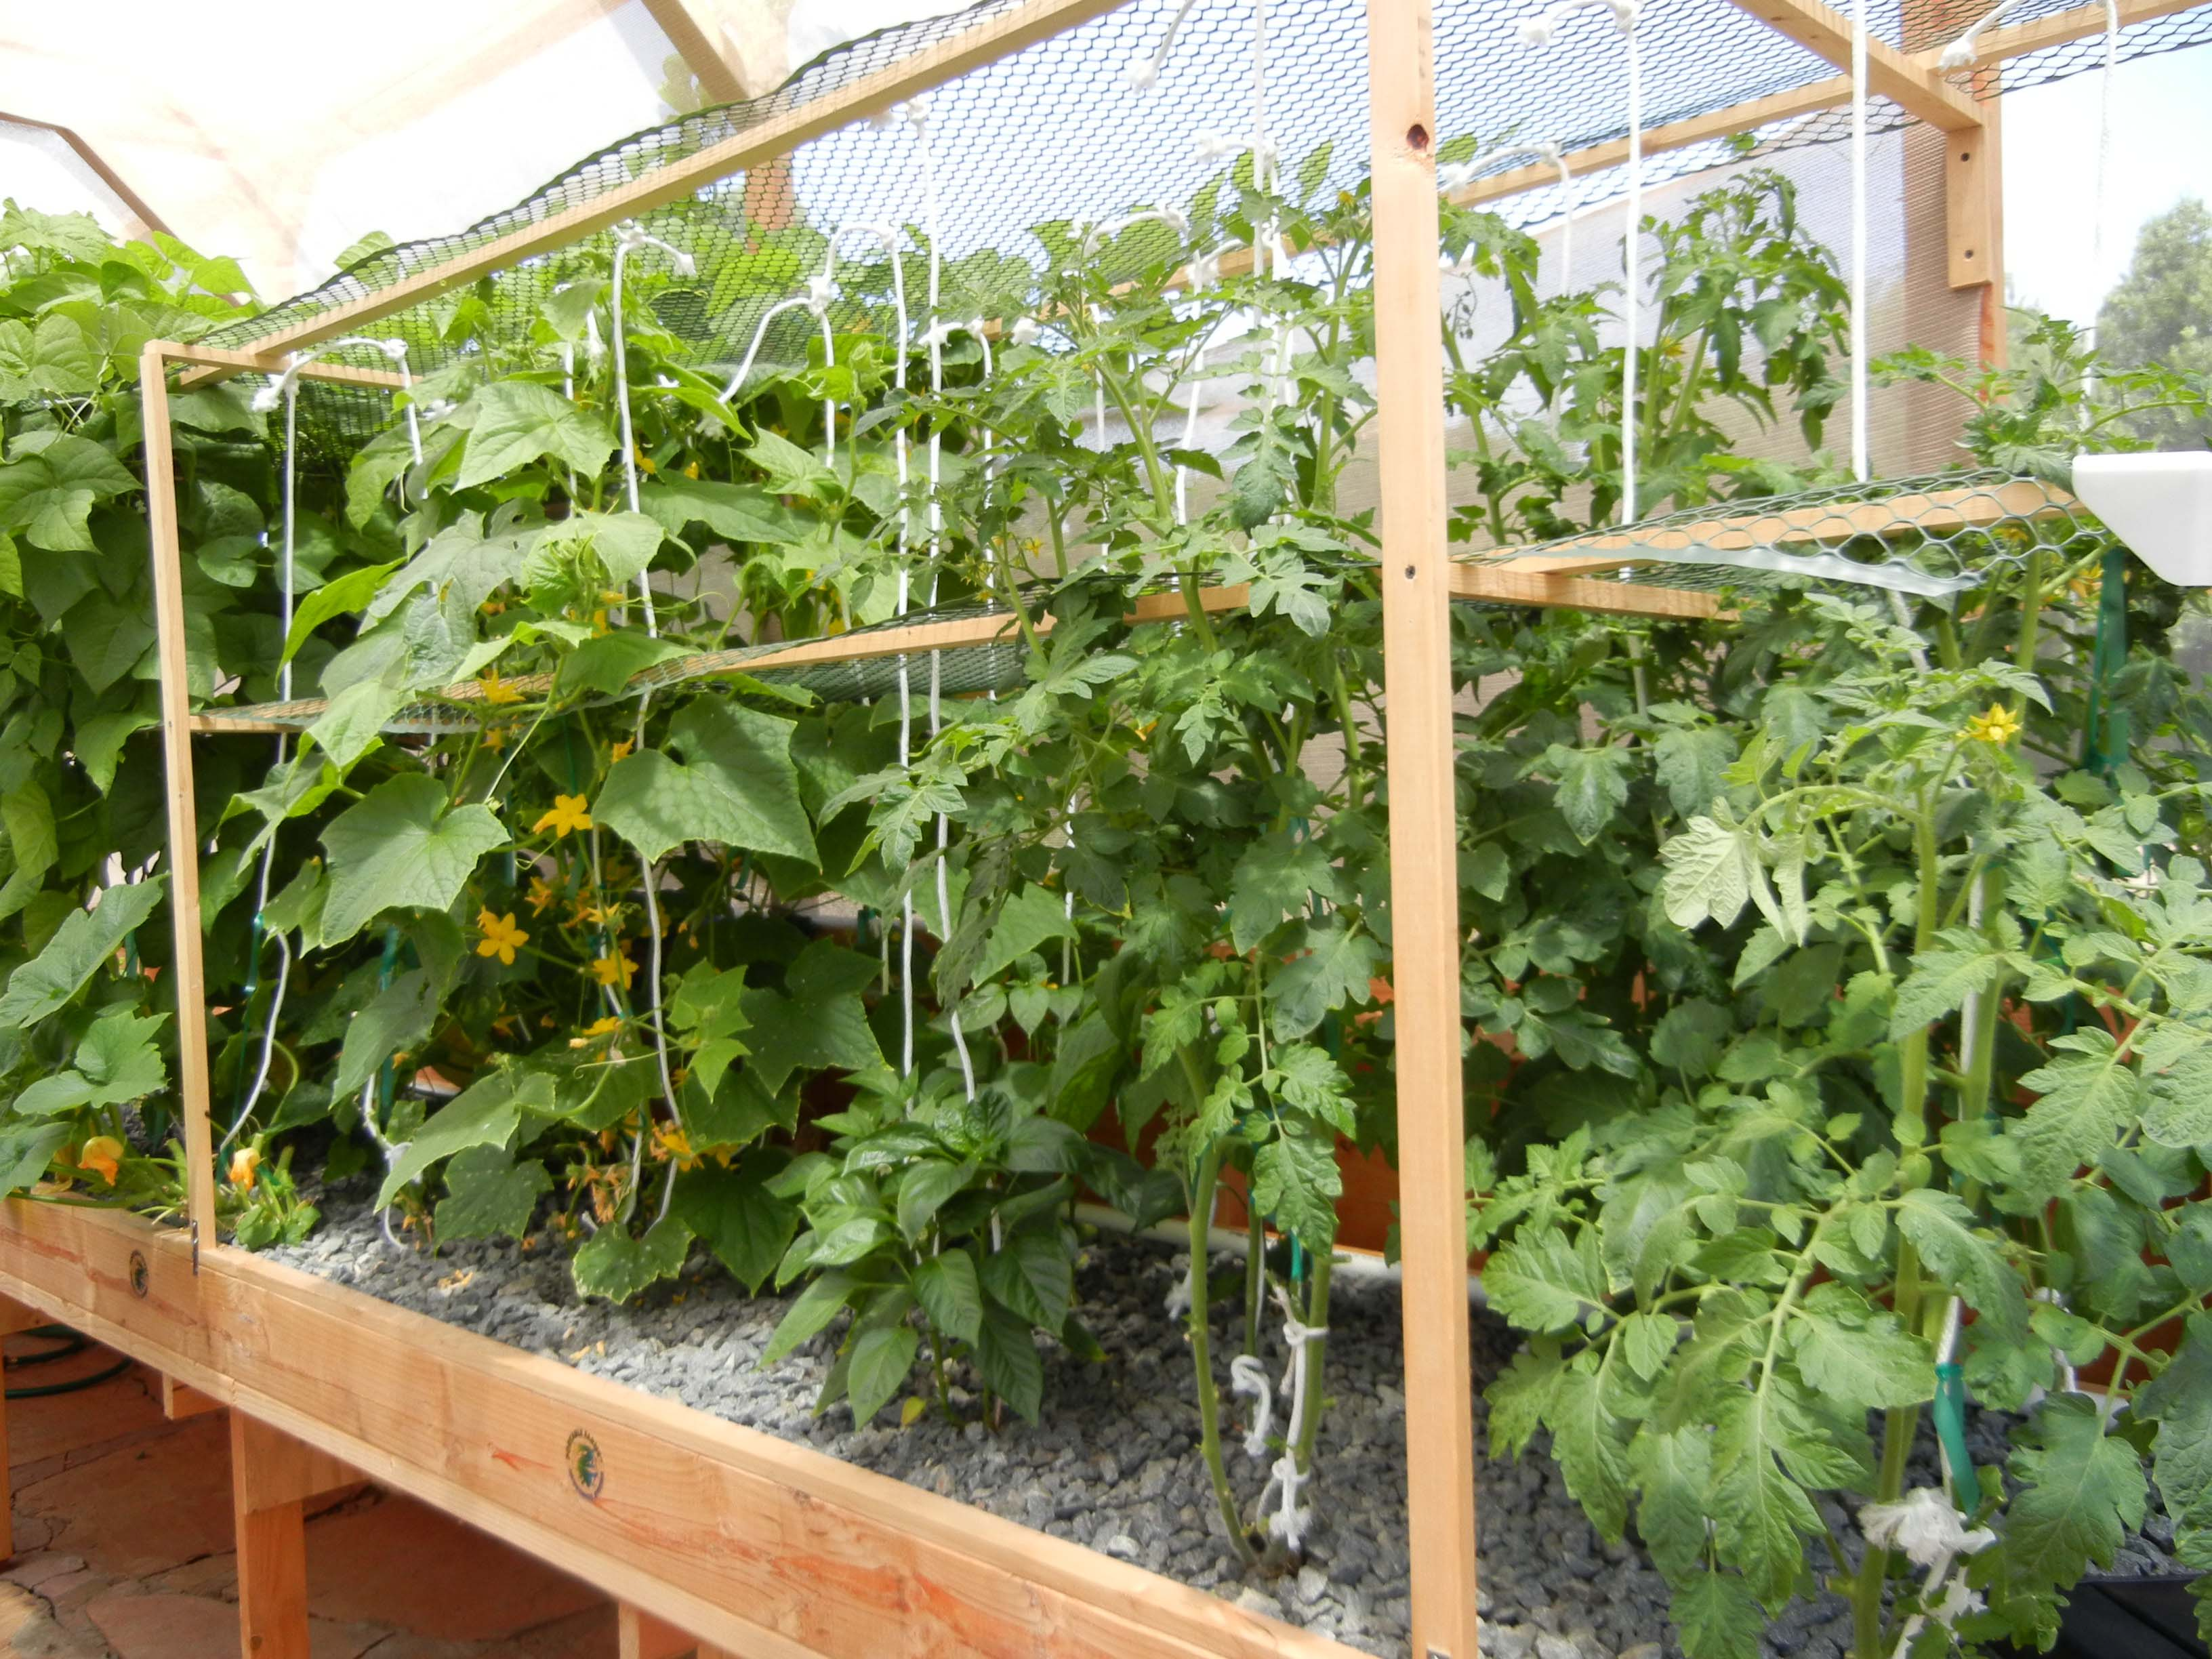 Planting eggplant seedlings and greenhouses in 2018 1